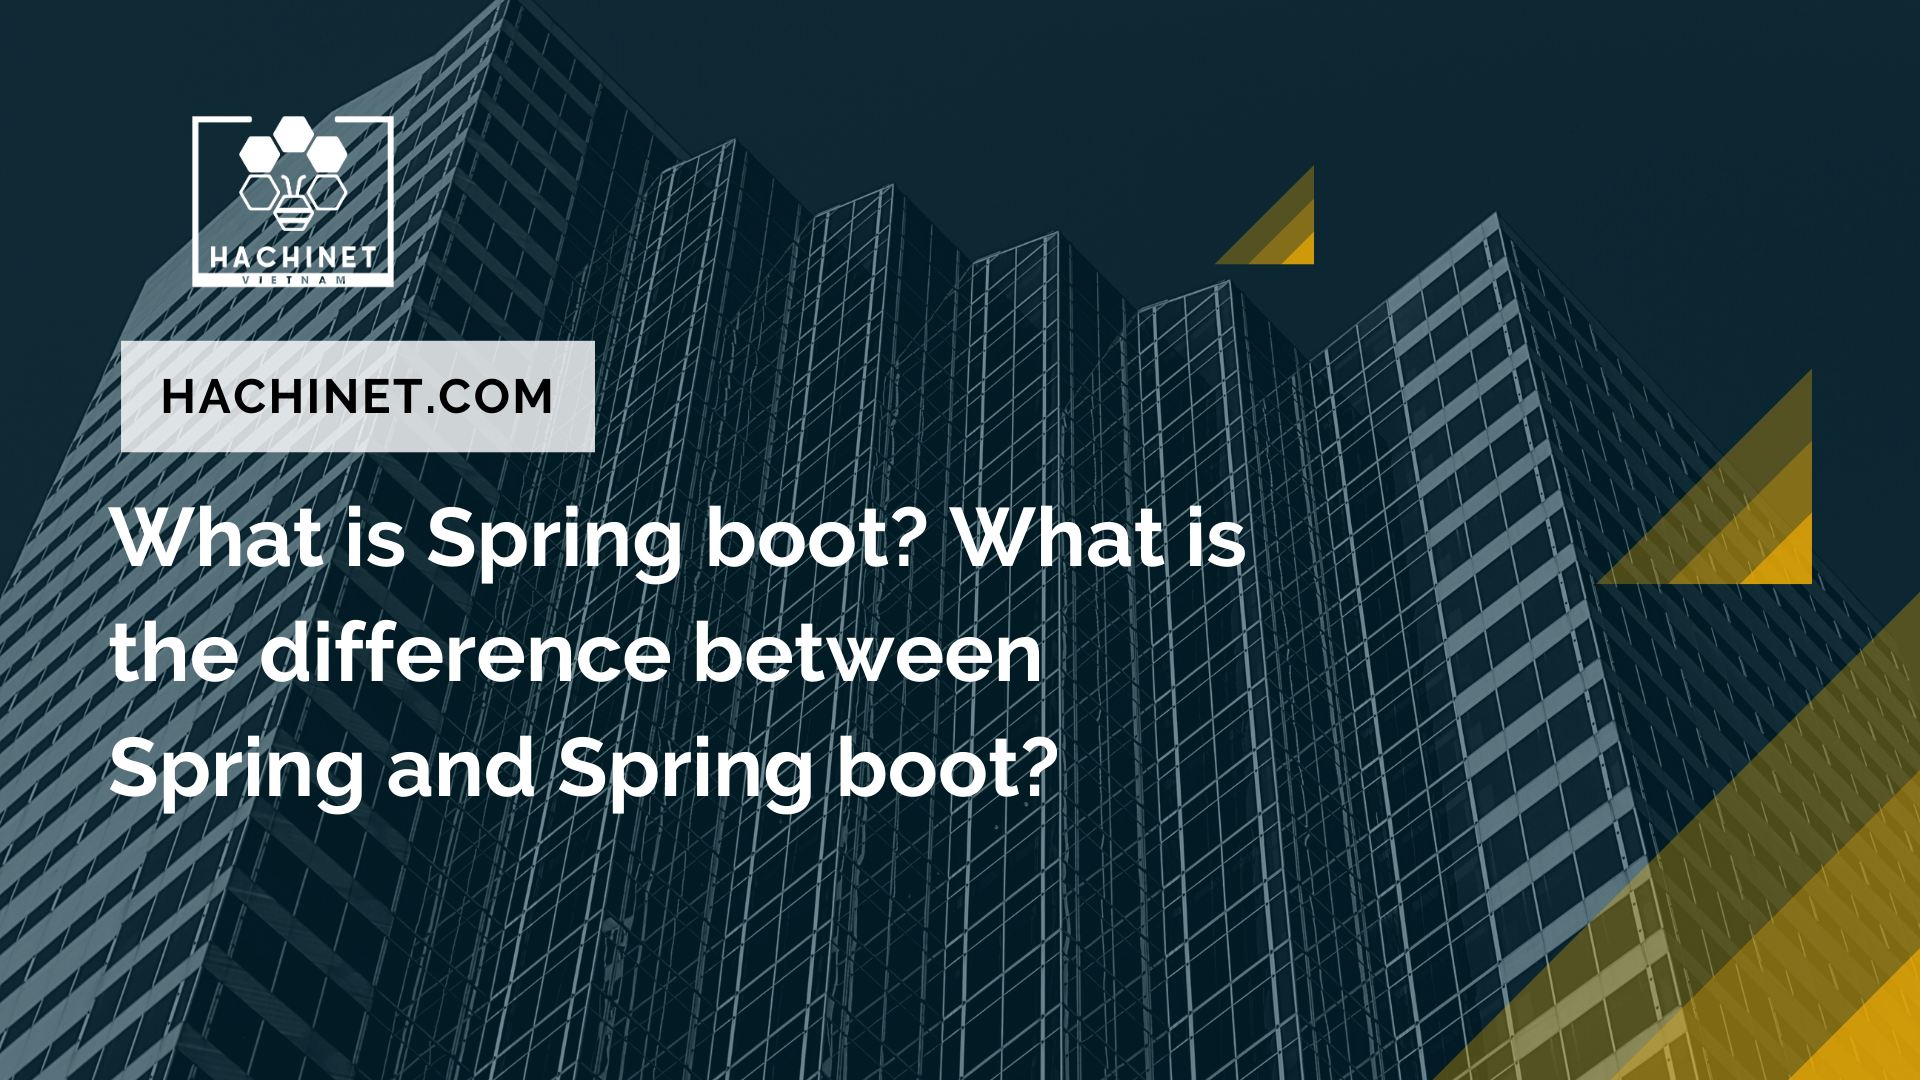 What is Spring boot? What is the difference between Spring and Spring boot?